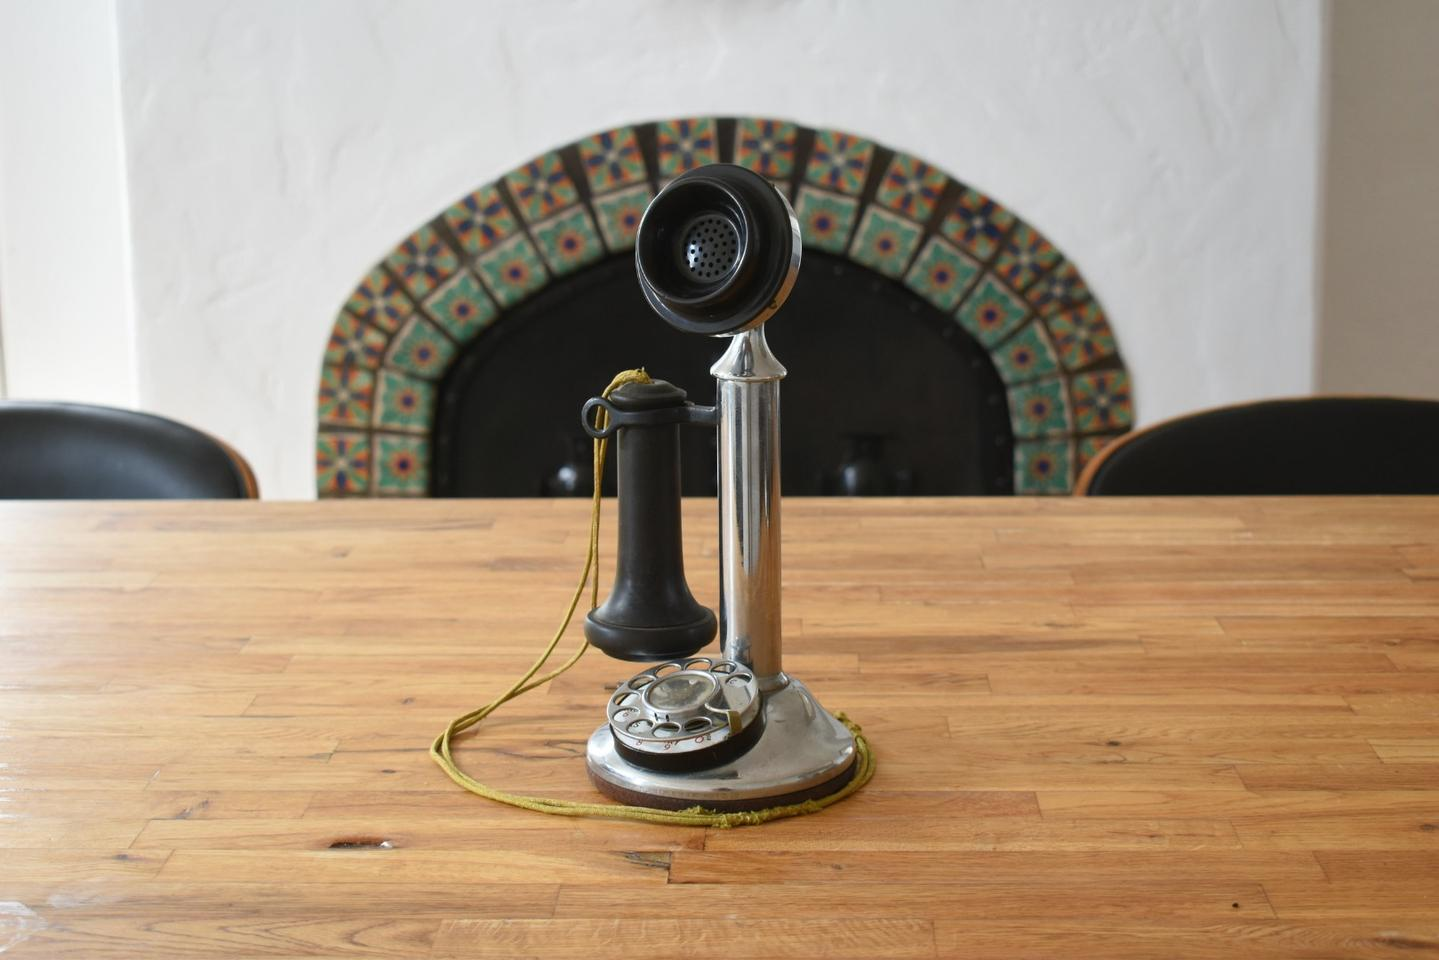 Grain Design's Metropolis model originated in the 1920s, and can now be used to chat with Alexa